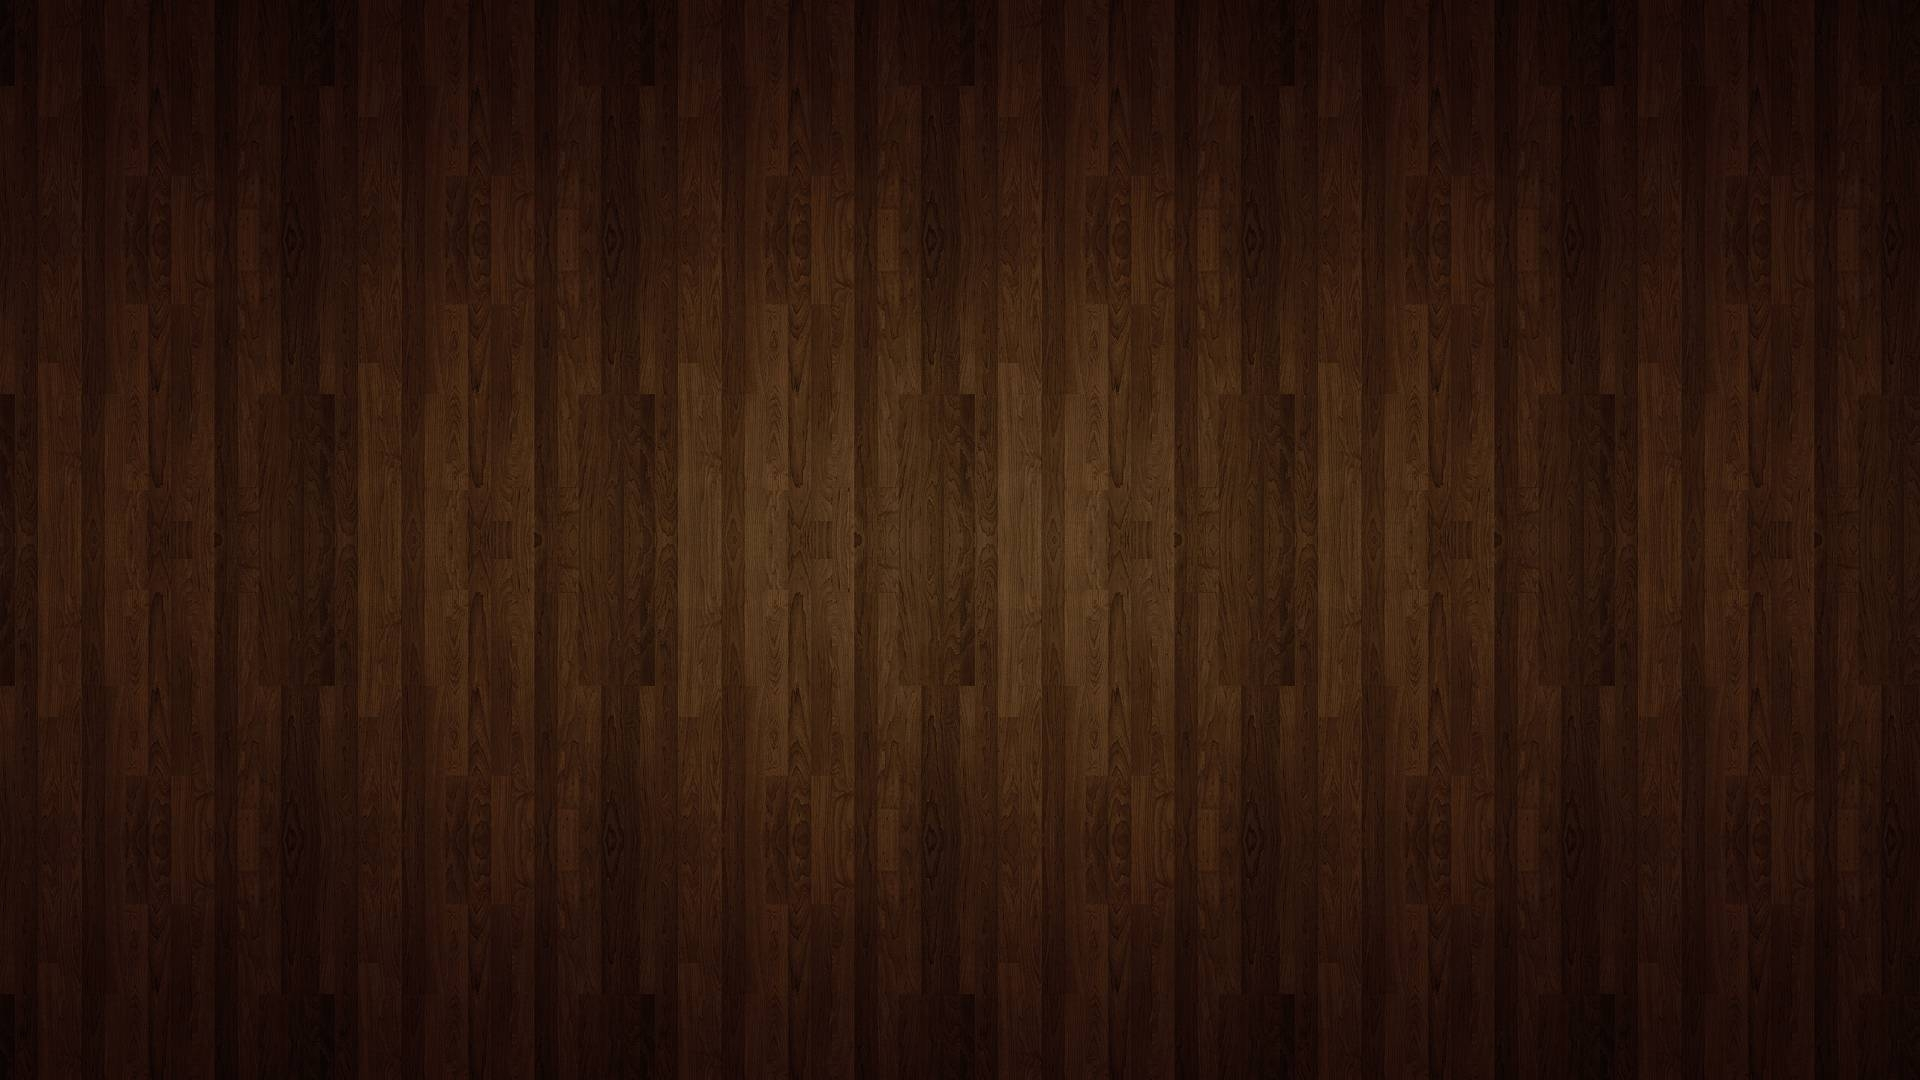 wood grain wallpapers hd - wallpaper cave